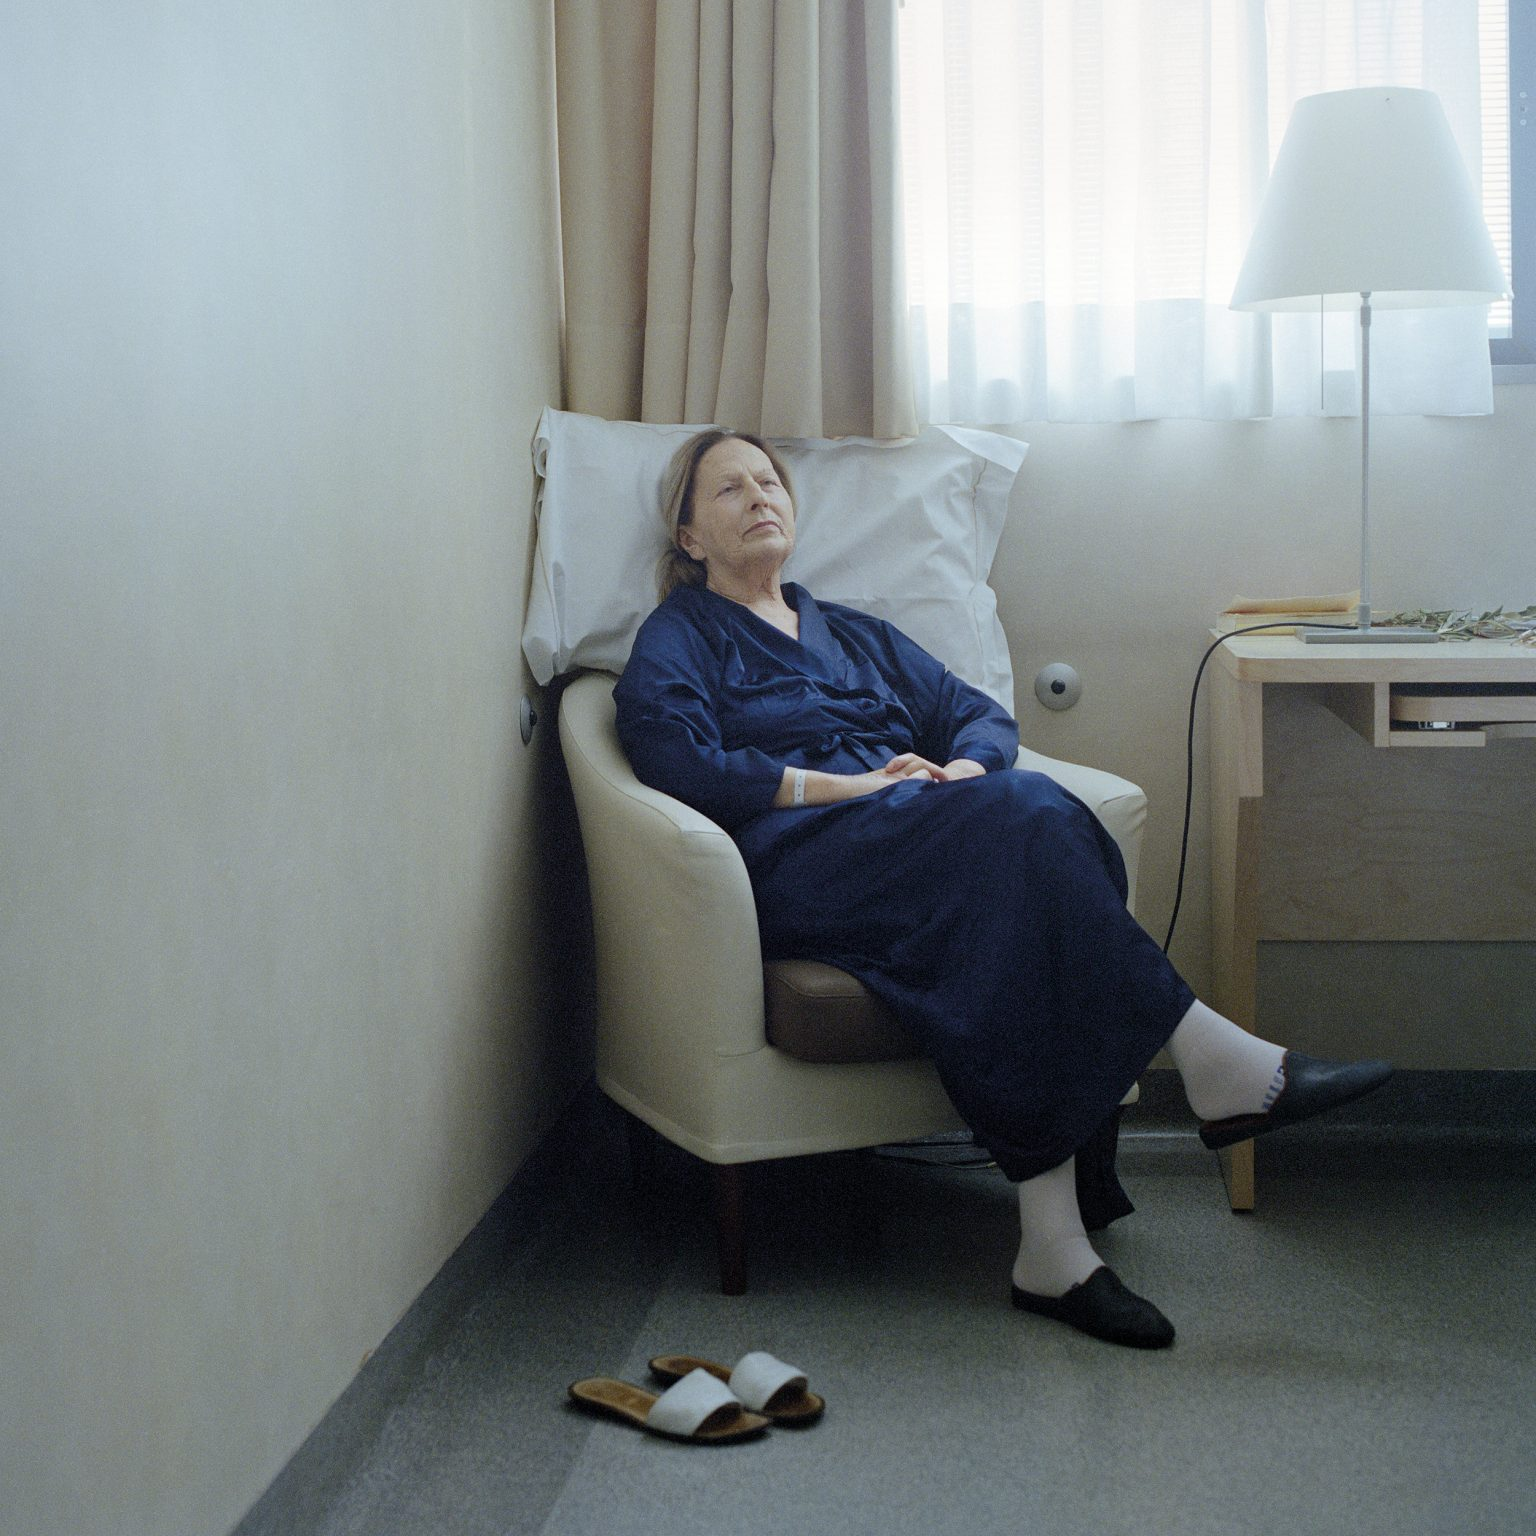 Milan, Italy. Serenella Pacifici, 71 years old, in the surgery ward of the European Institute of Oncology, waiting to be operated on for a lung cancer. She had been smoking since she was 17. In Italy, 7% of the funds spent on the health system are used on treatments linked to smoking.